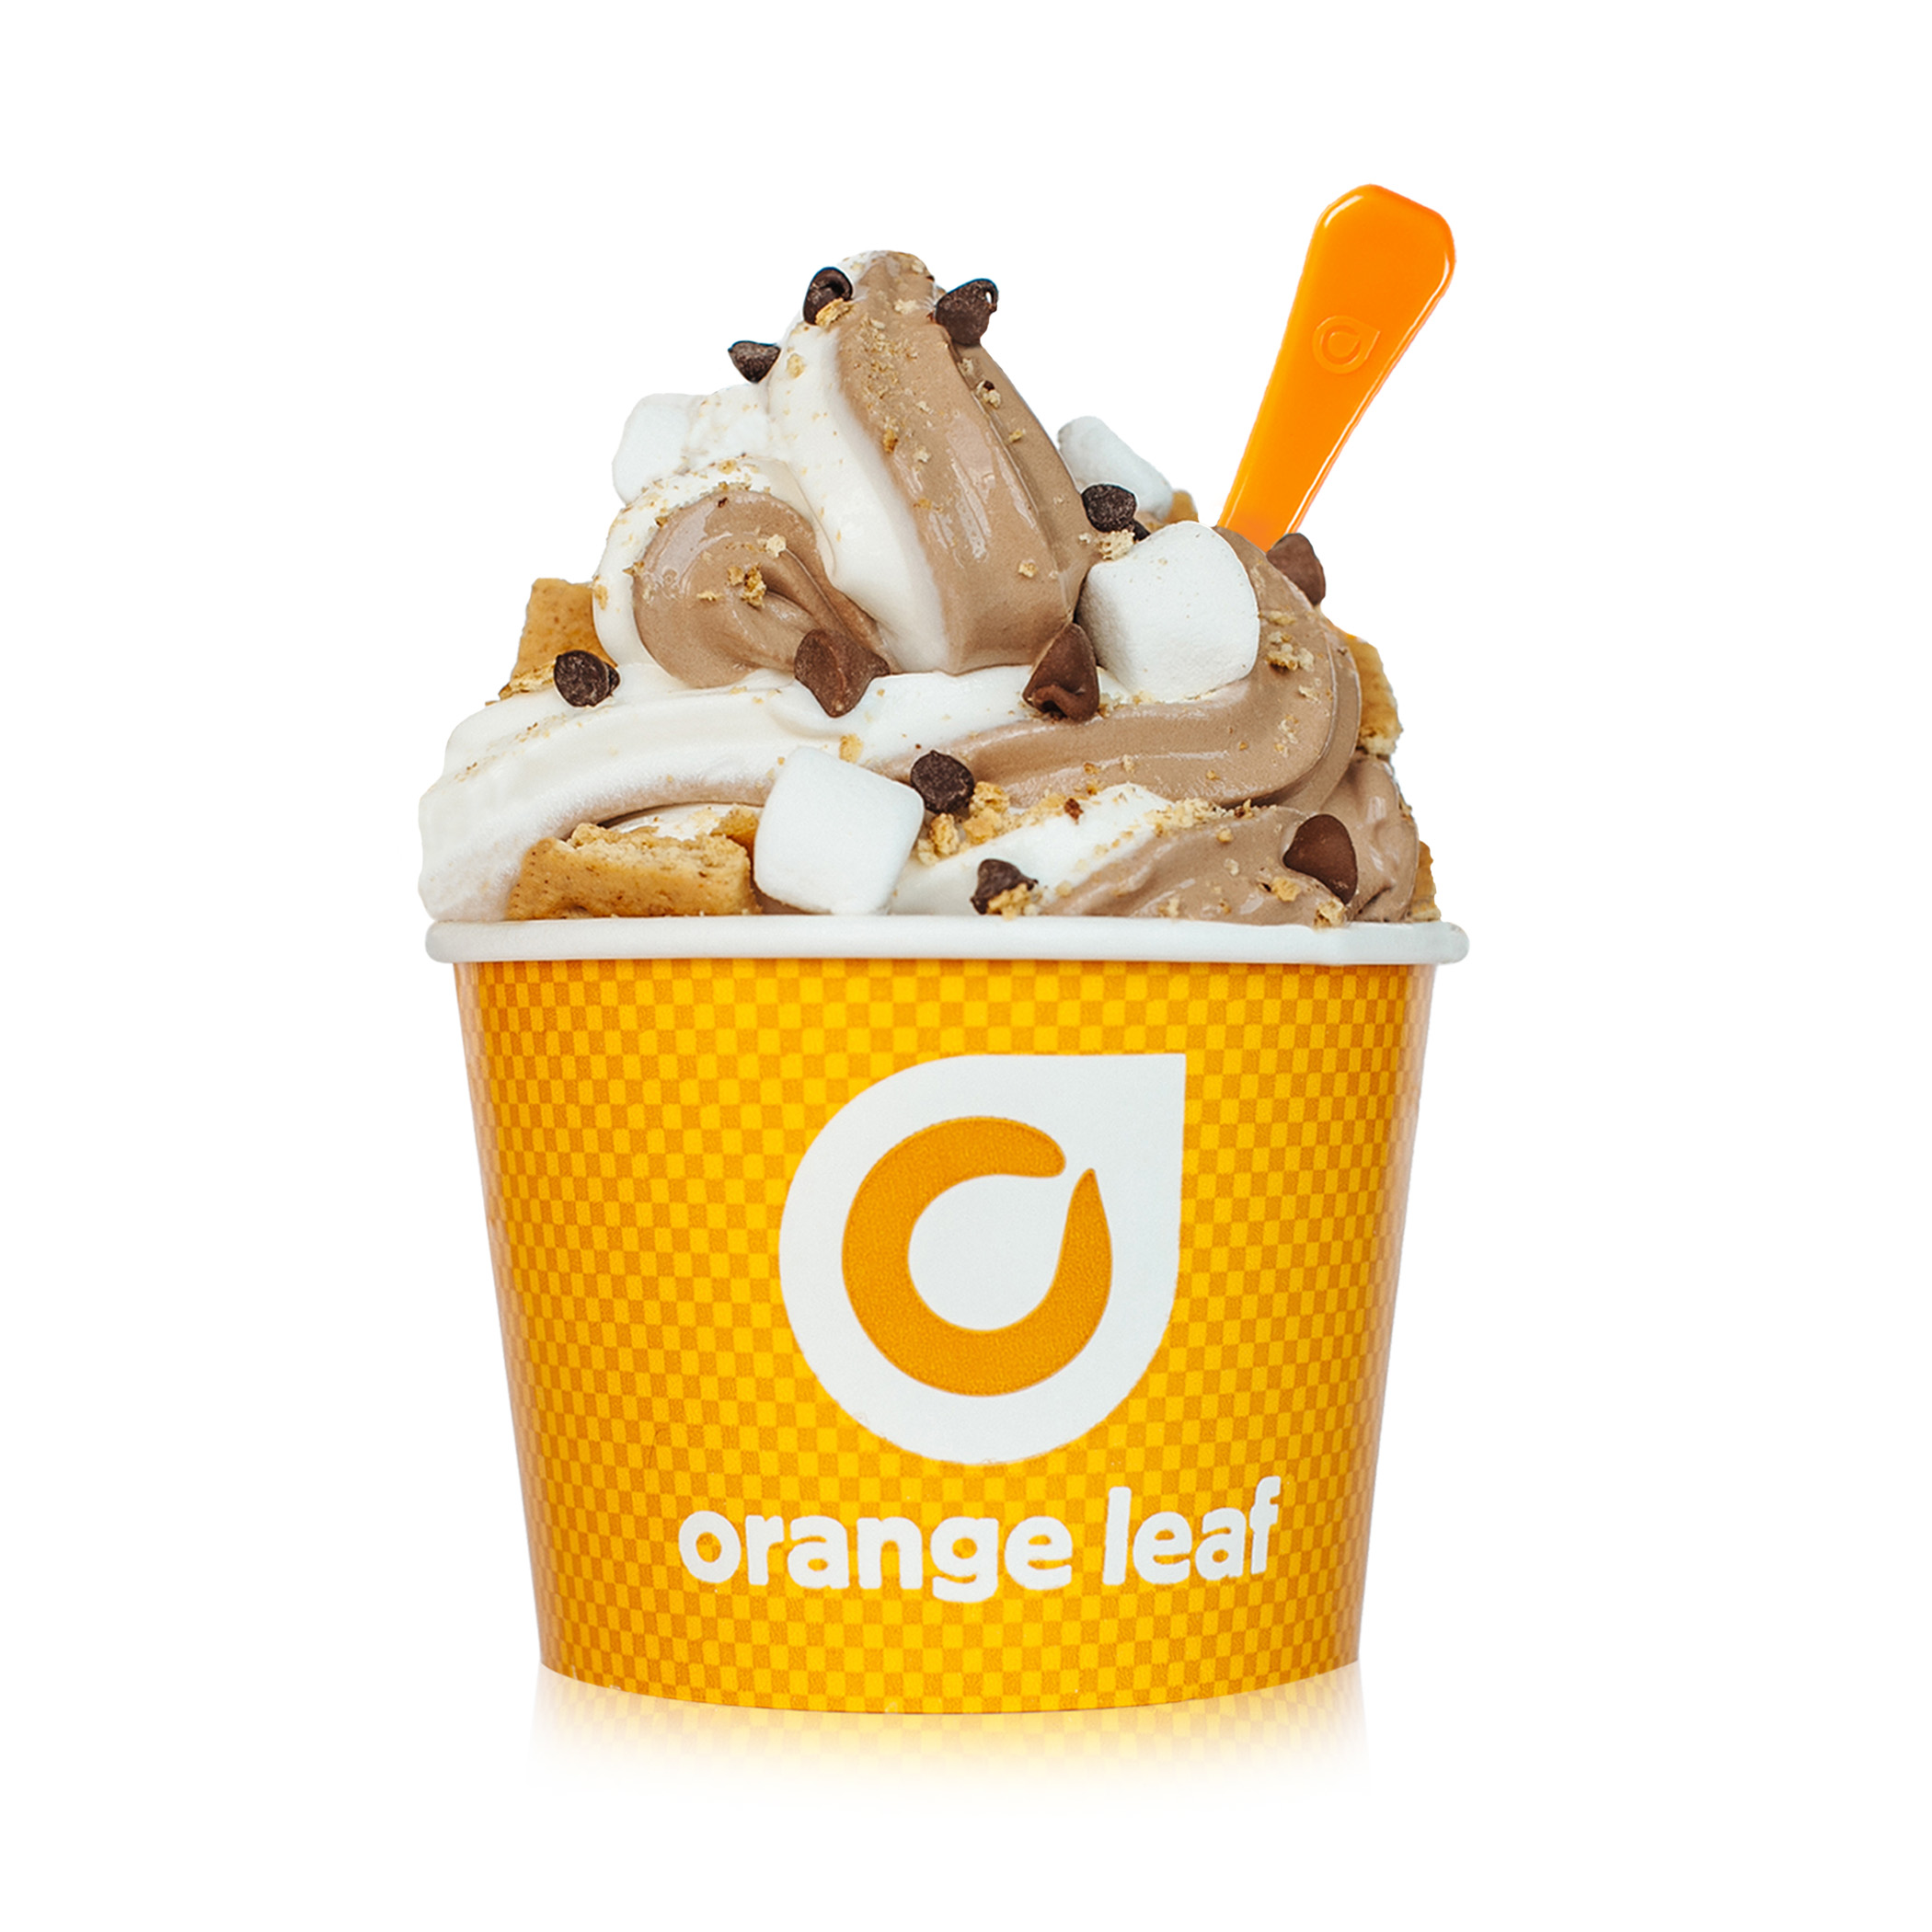 The International Frozen Yogurt Association Orange Leaf Frozen